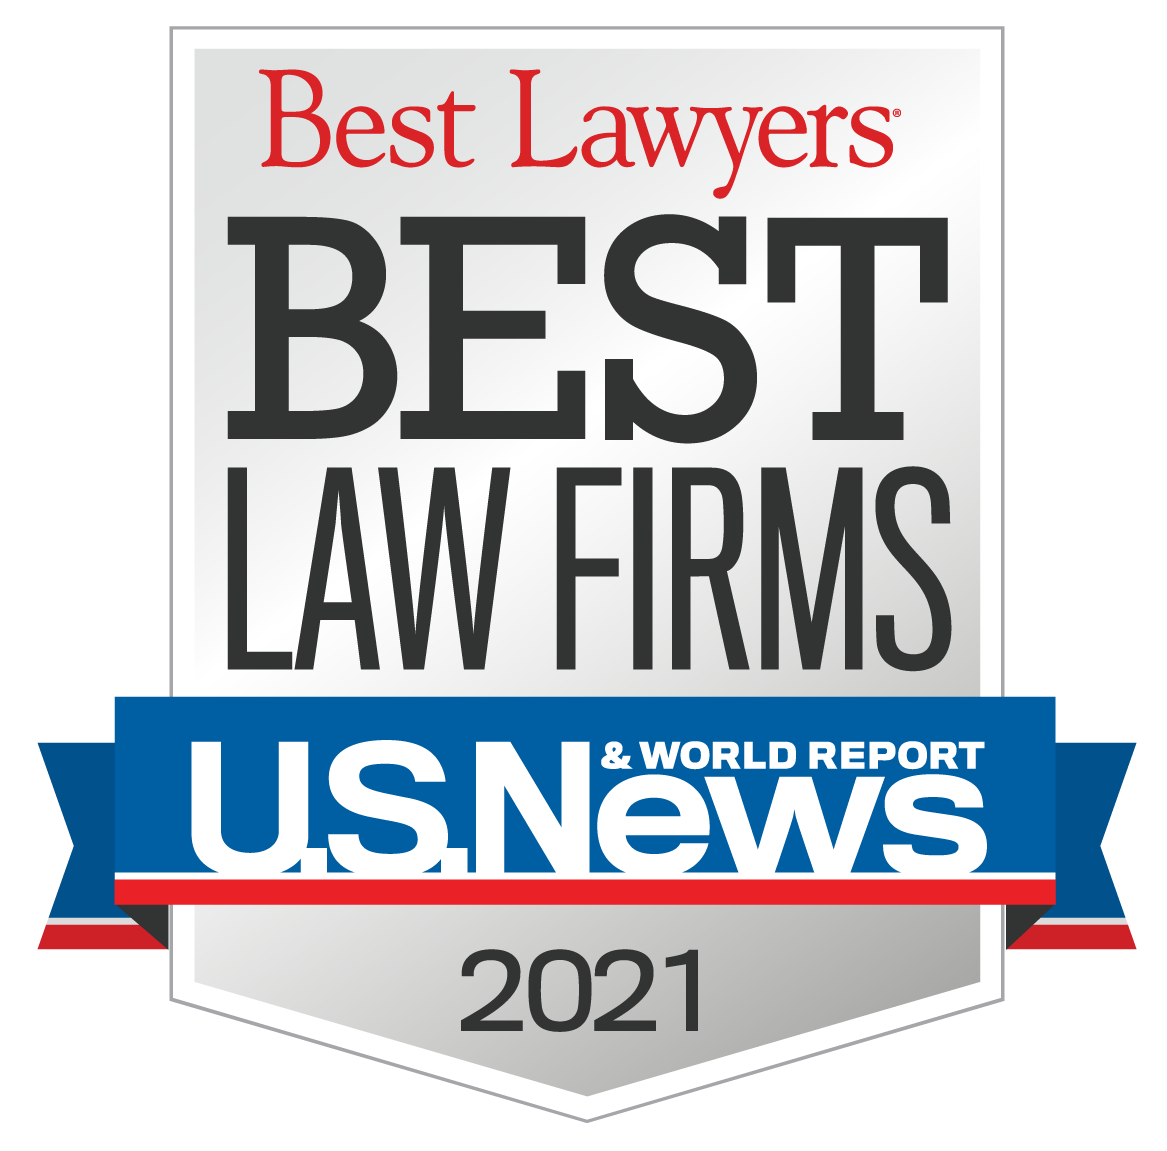 US News World Report Best Law Firms 2021